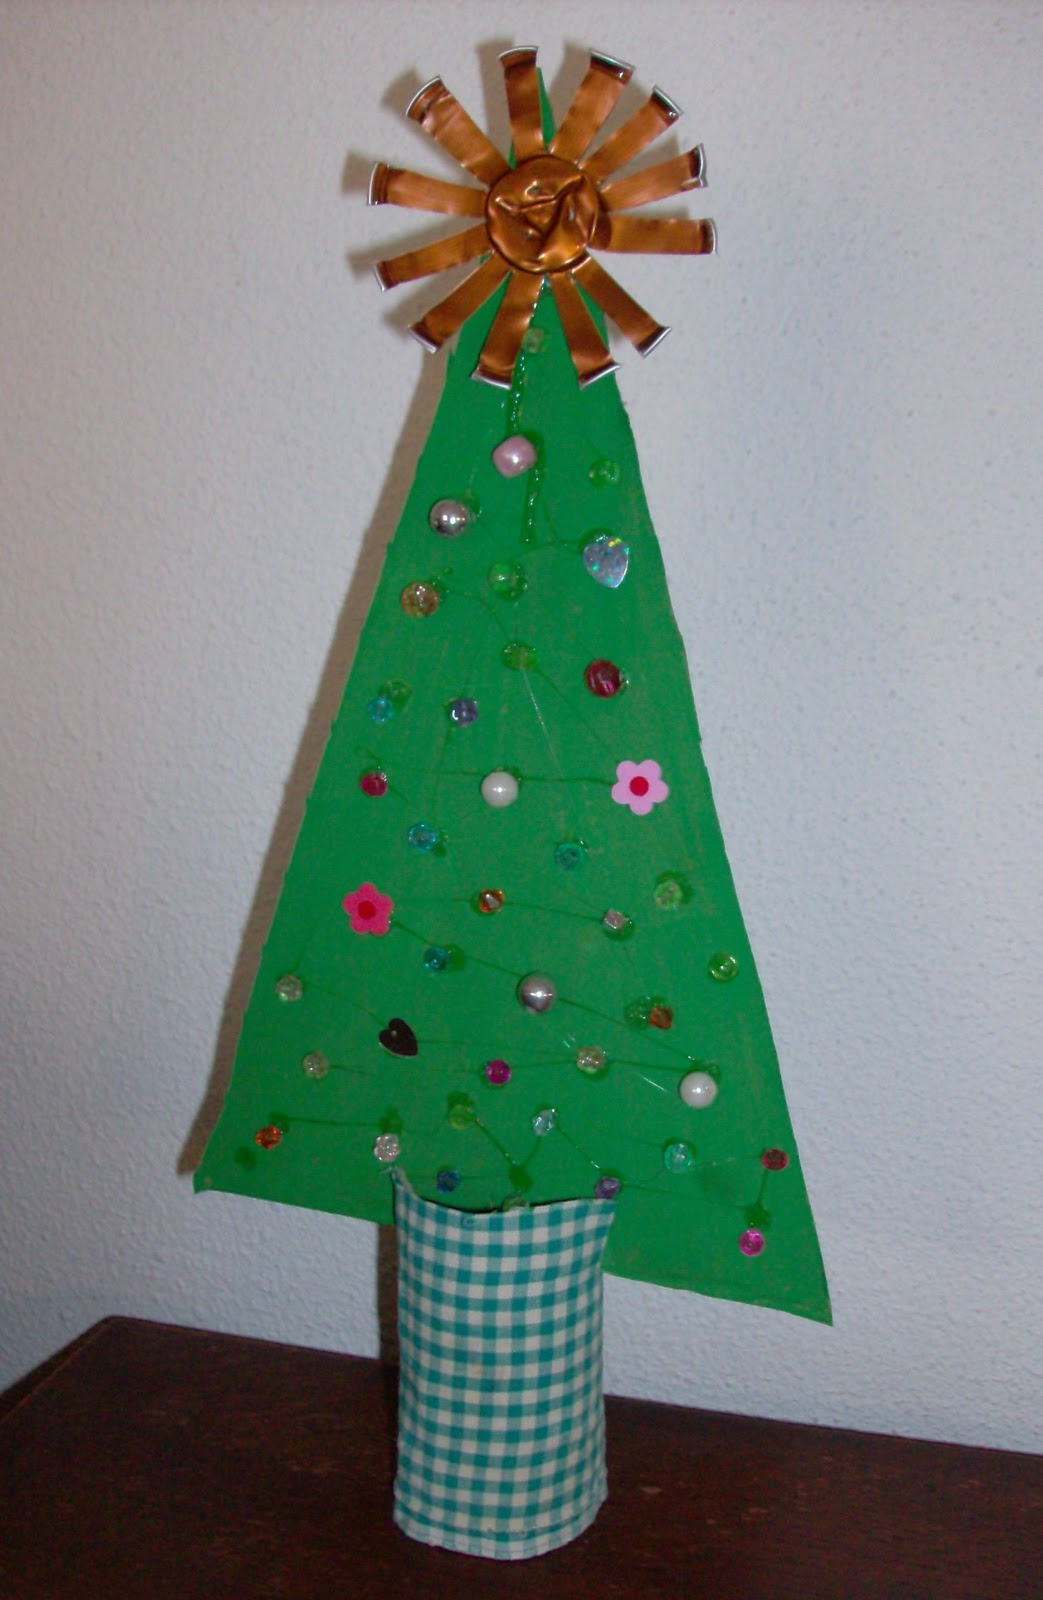 Christmas Tree Made Of Recycled Materials